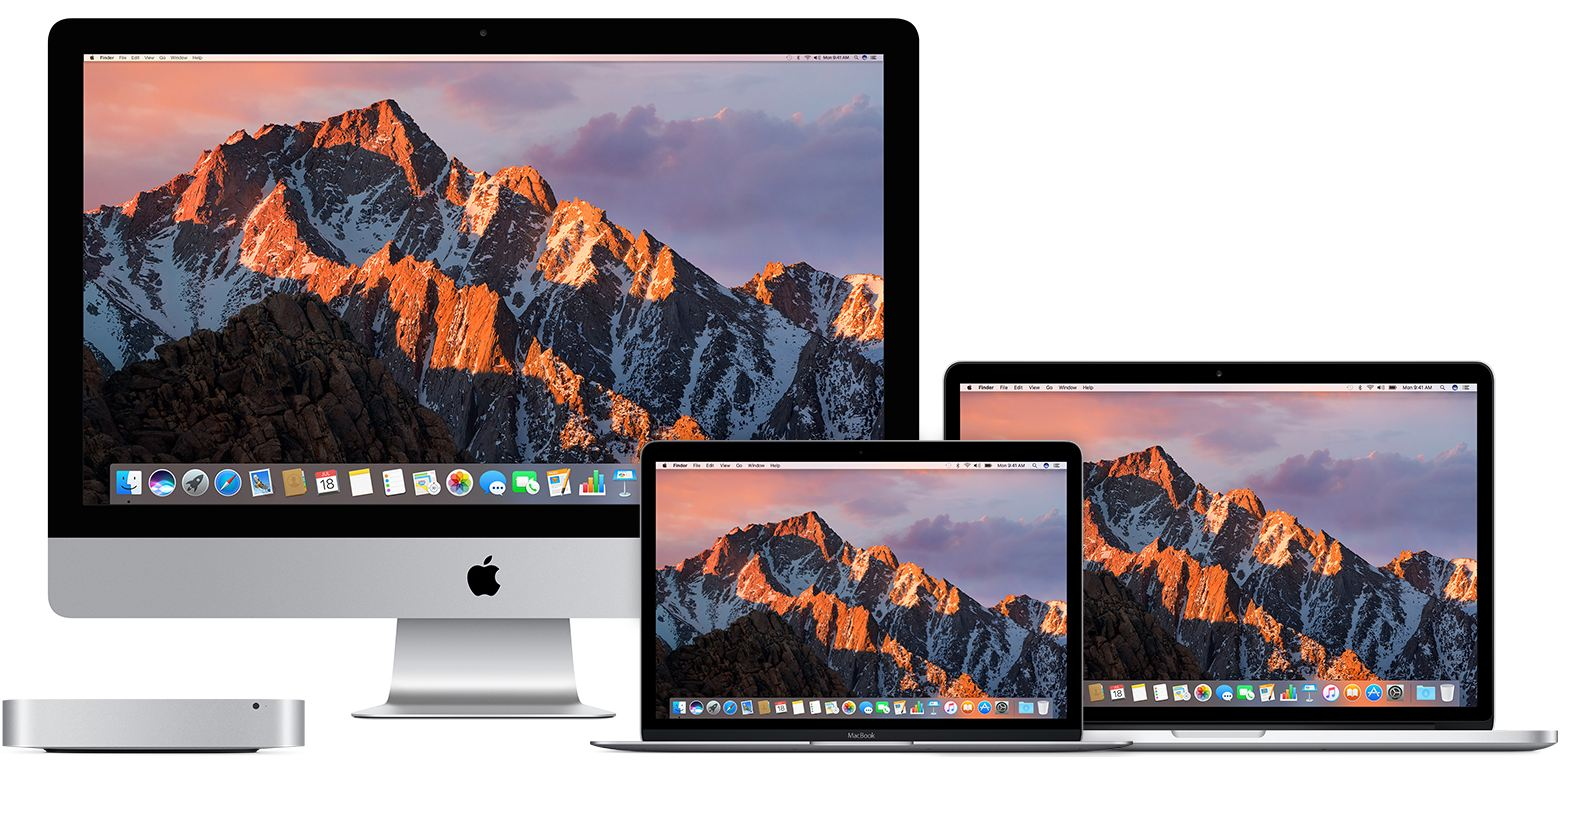 How to downgrade macOS Sierra